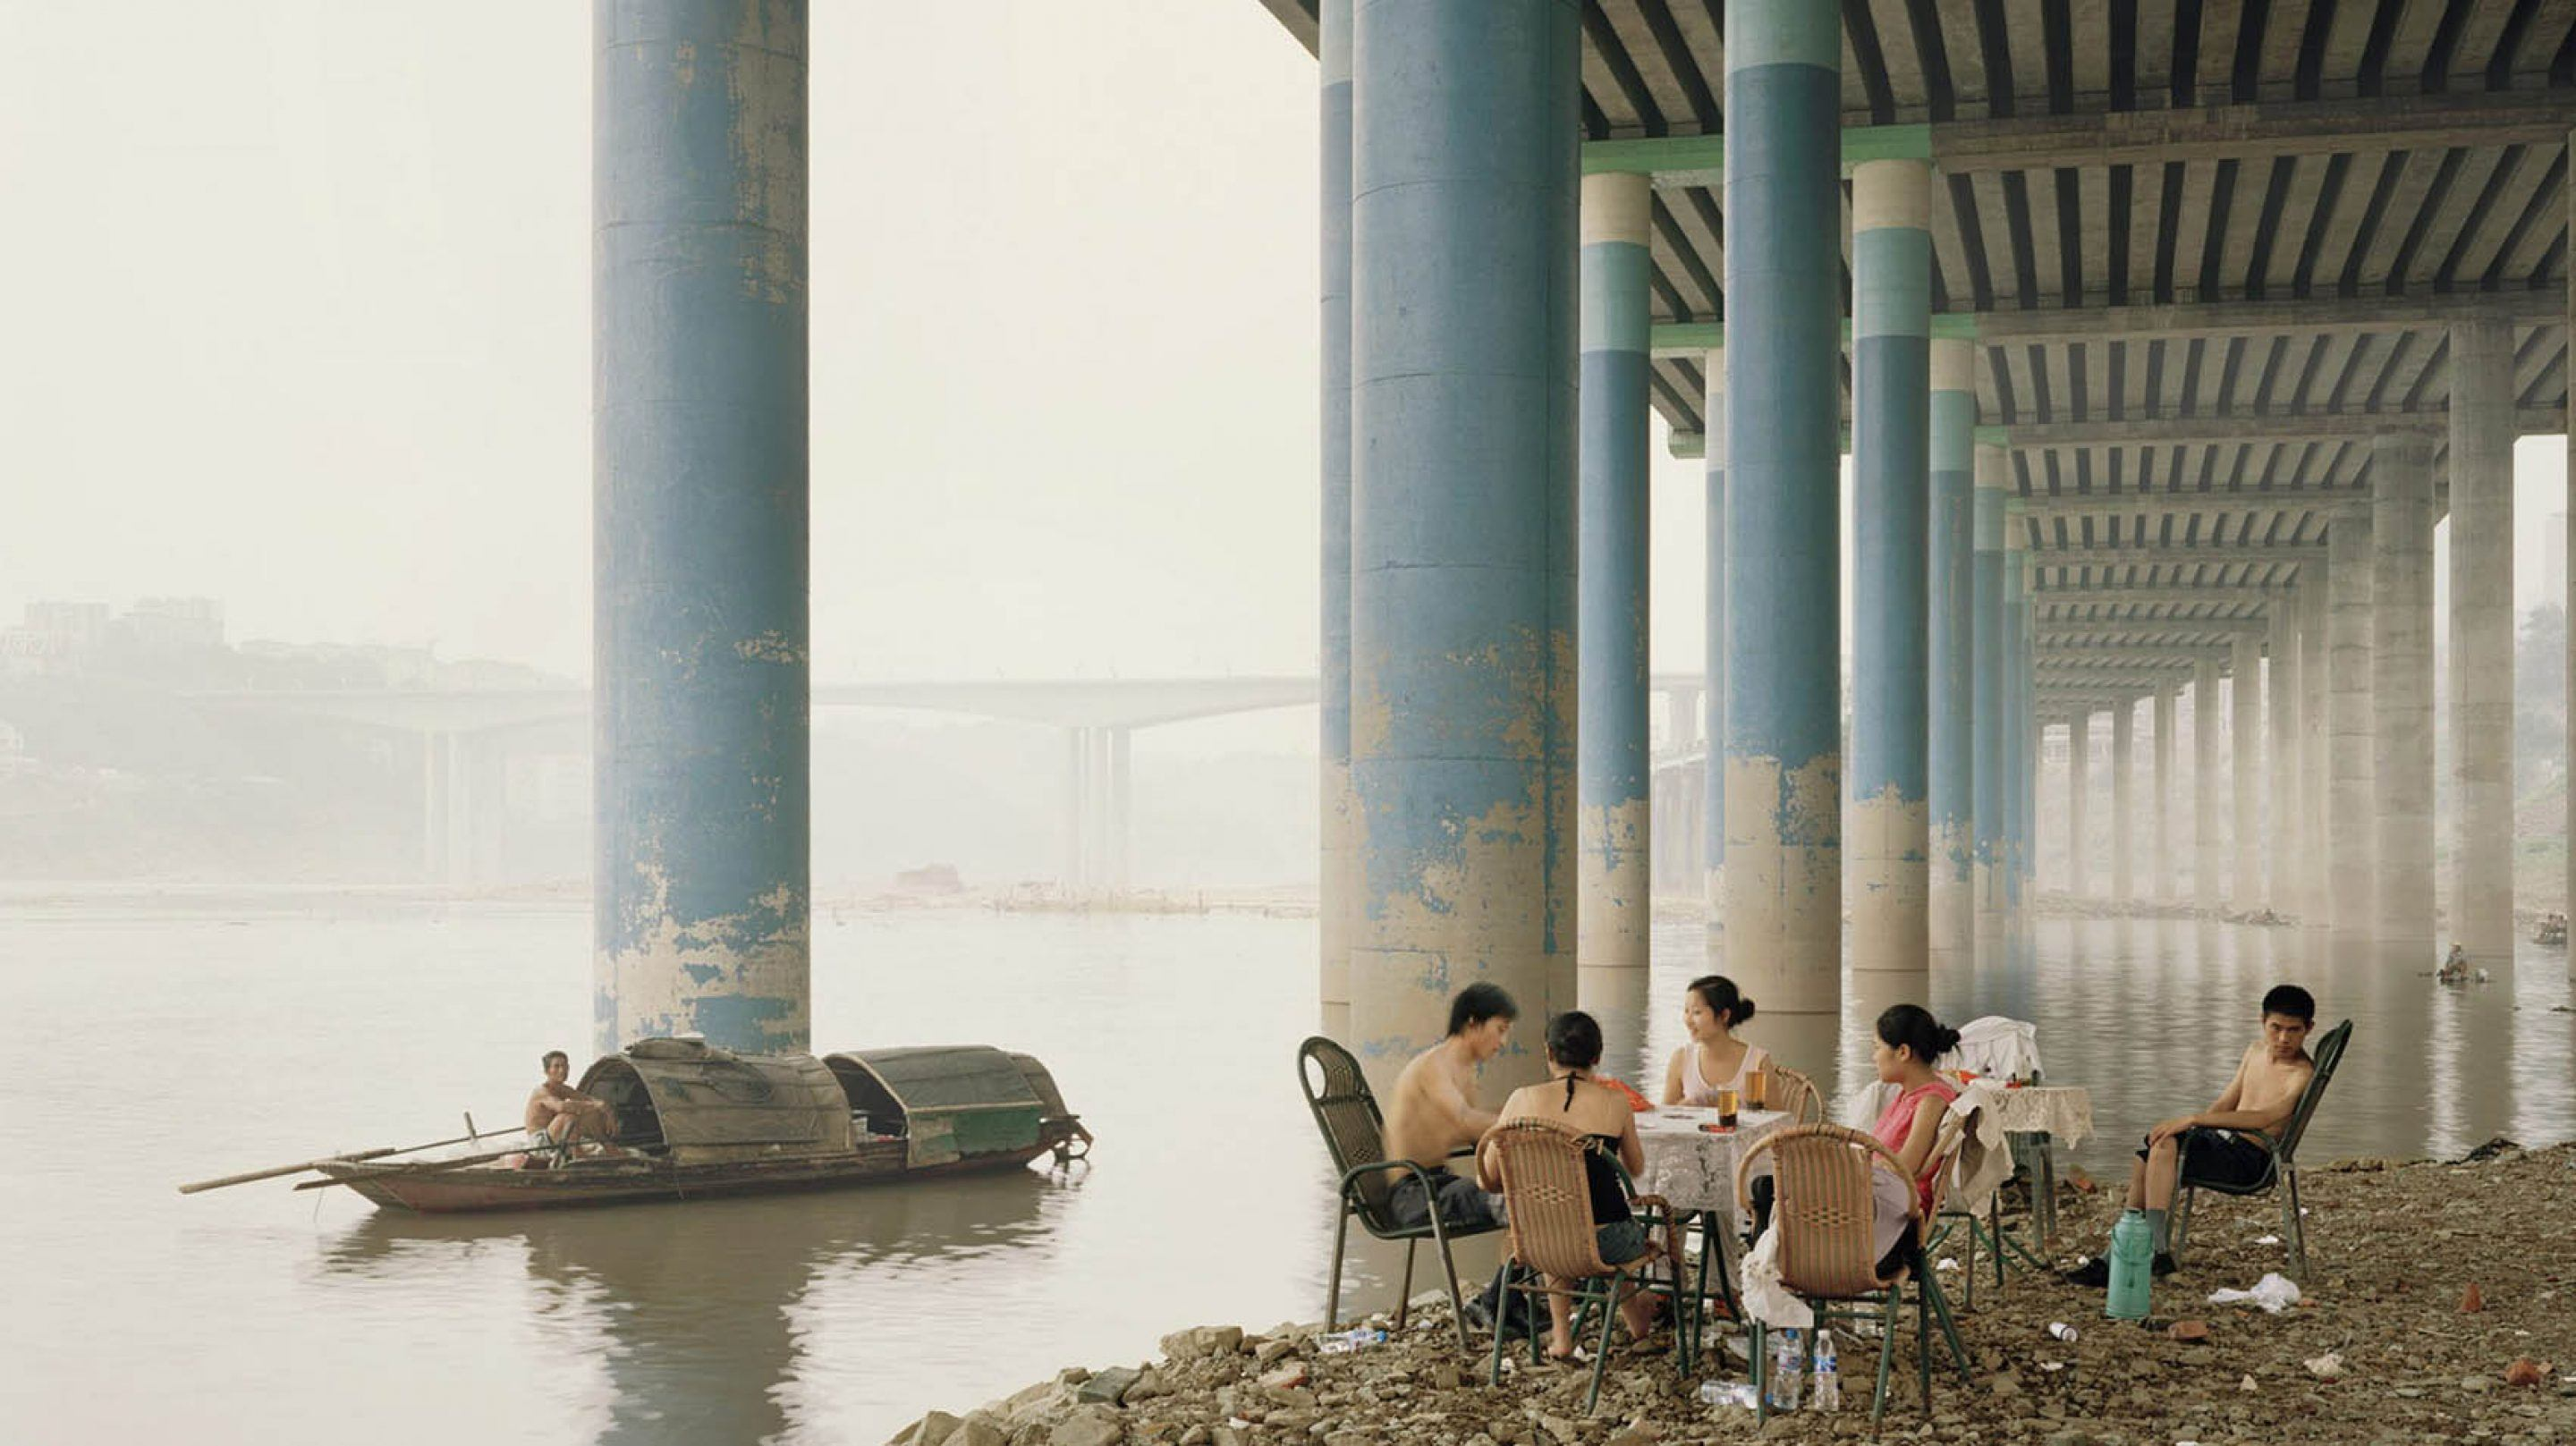 IGNANT-Photography-Nadav-Kander-Yangtze-The-Long-River-022